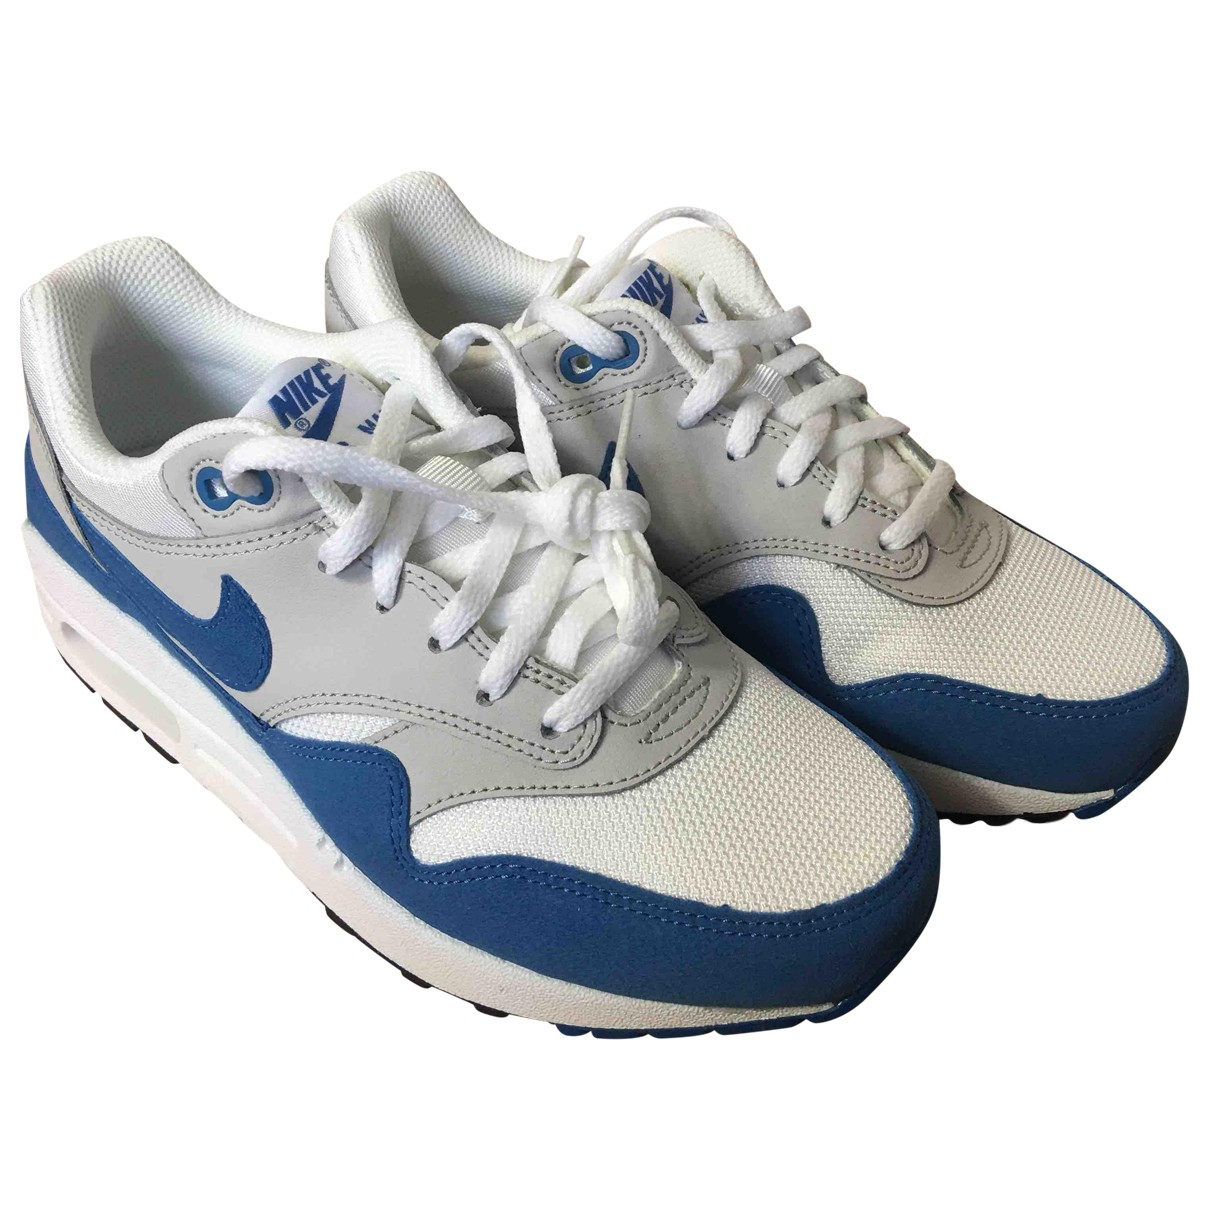 Nike Air Max 1 Blue Suede Trainers for Women 37.5 EU